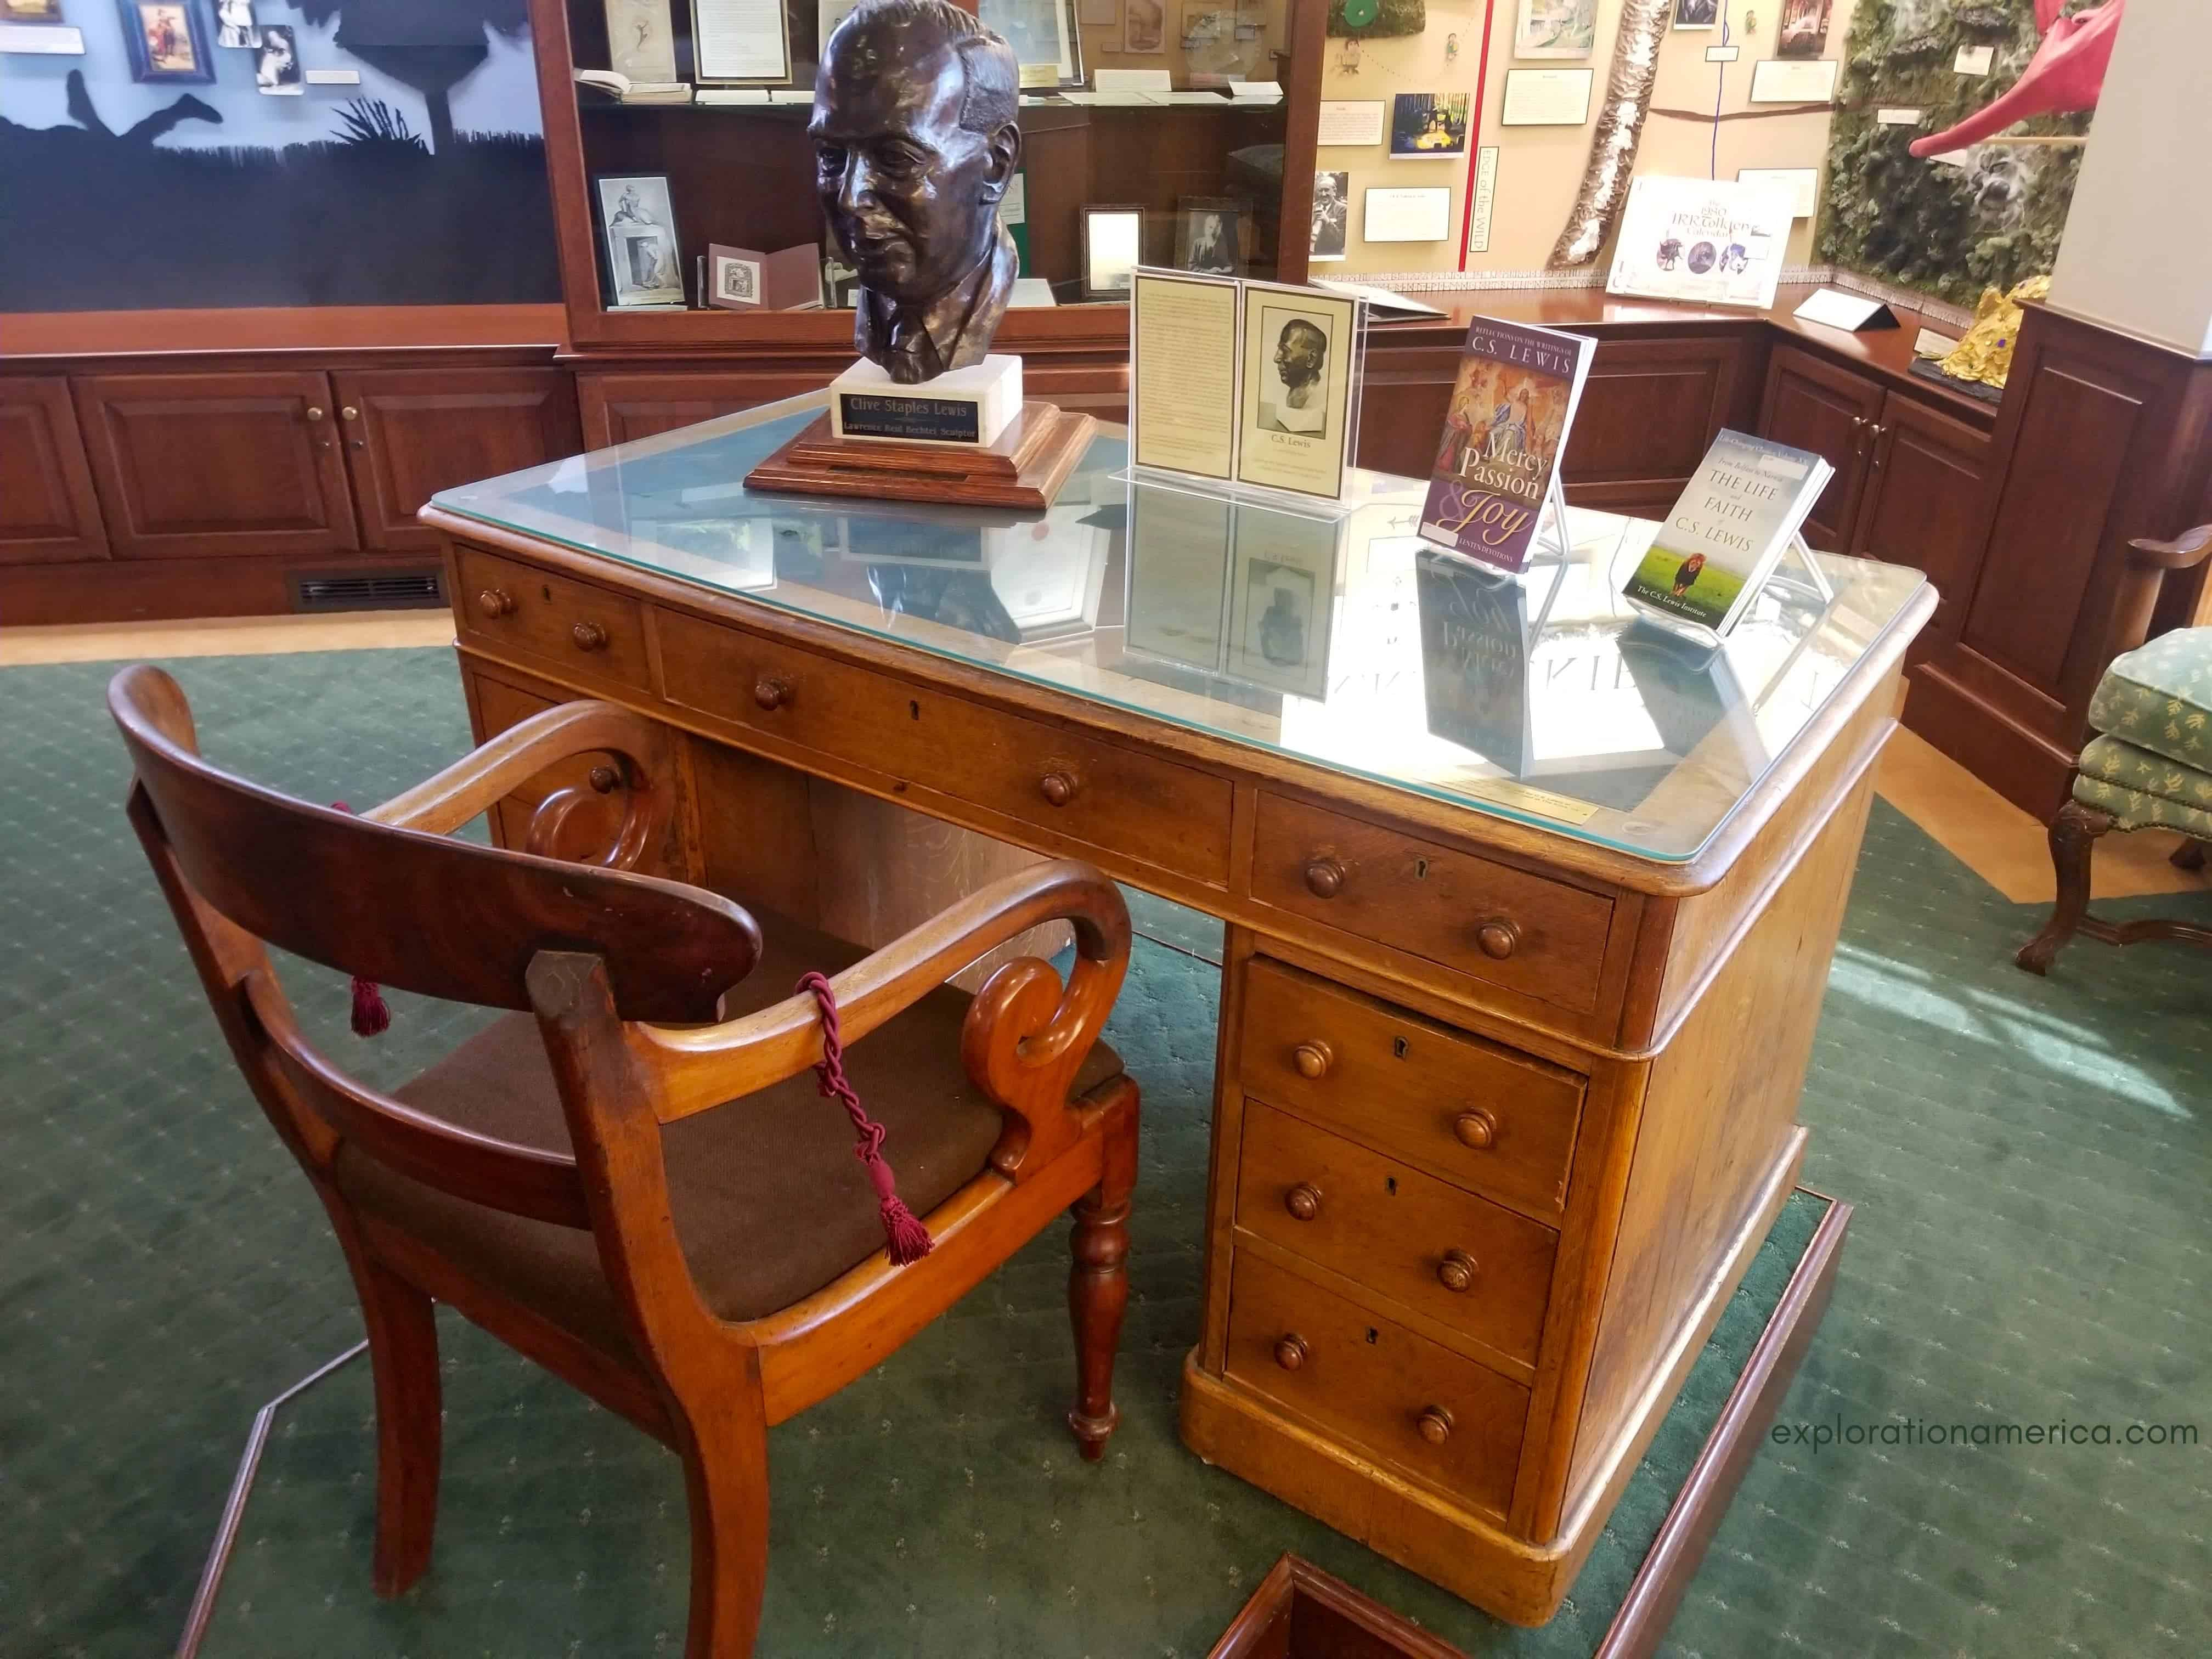 CS Lewis writing desk